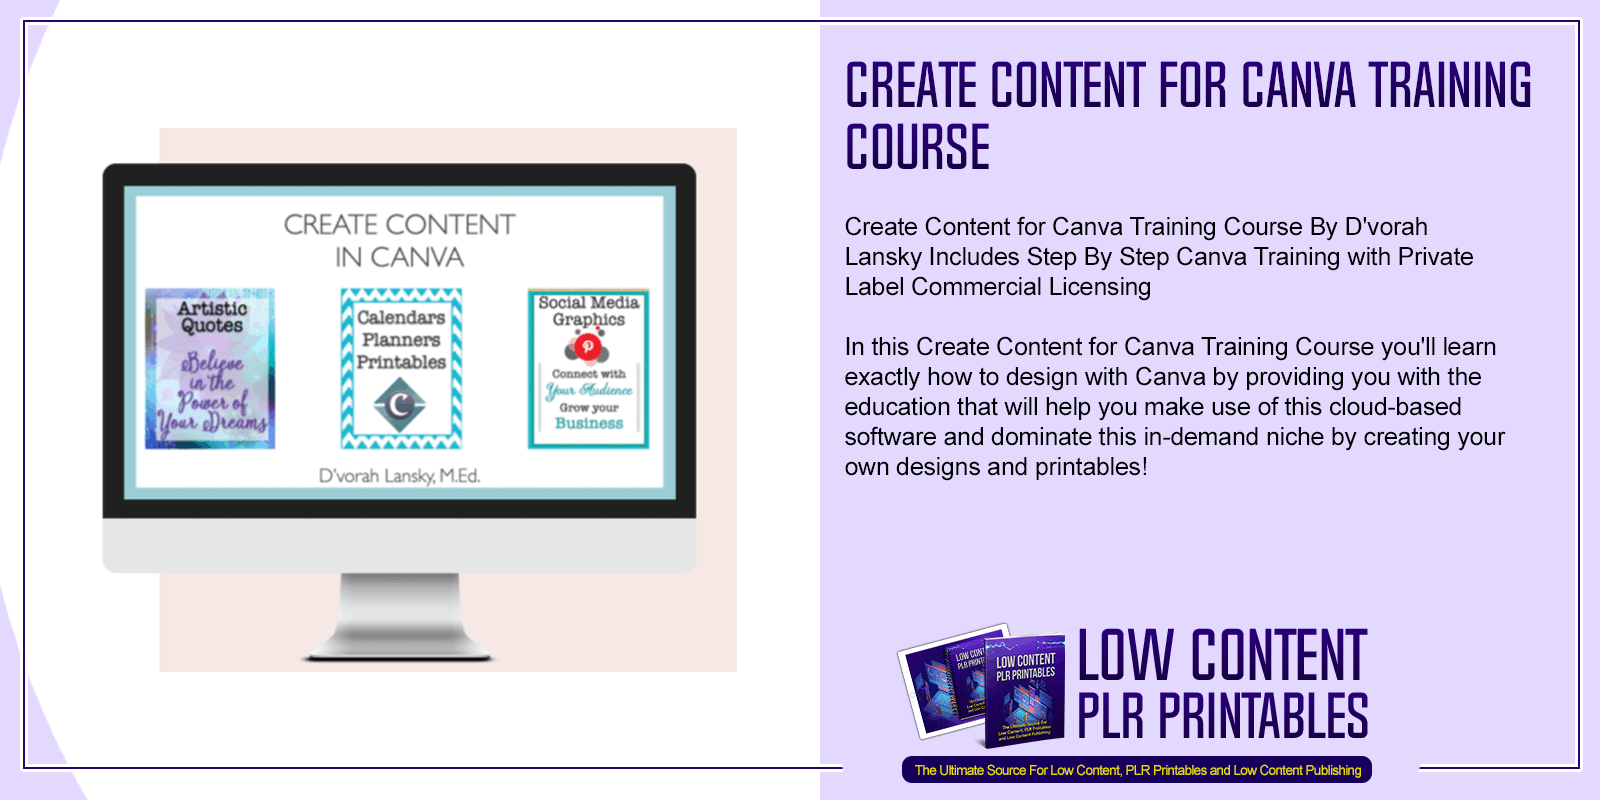 Create Content for Canva Training Course